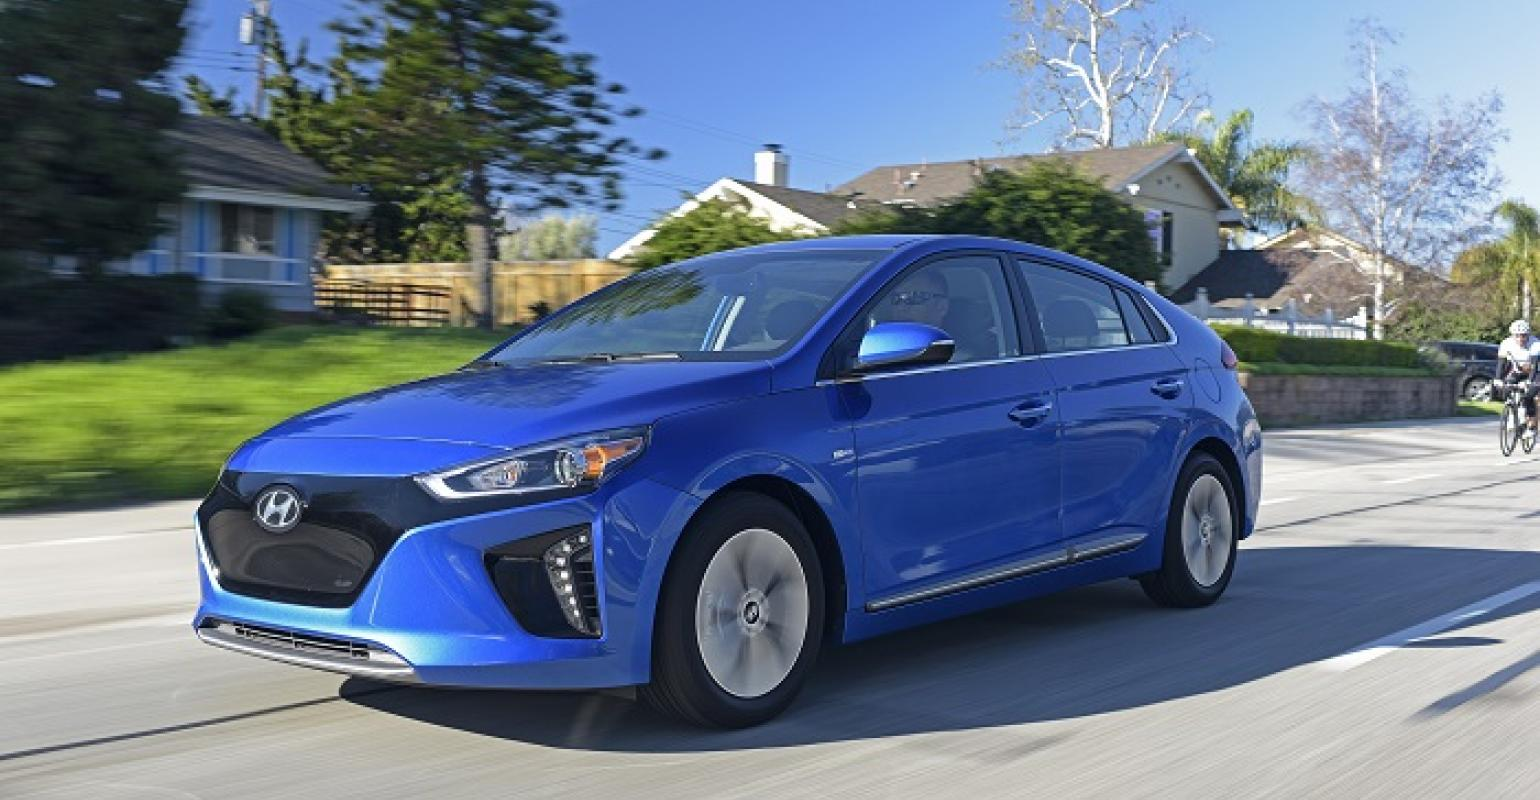 Ioniq Offered In Five Colors Blue White Black Silver And Gray